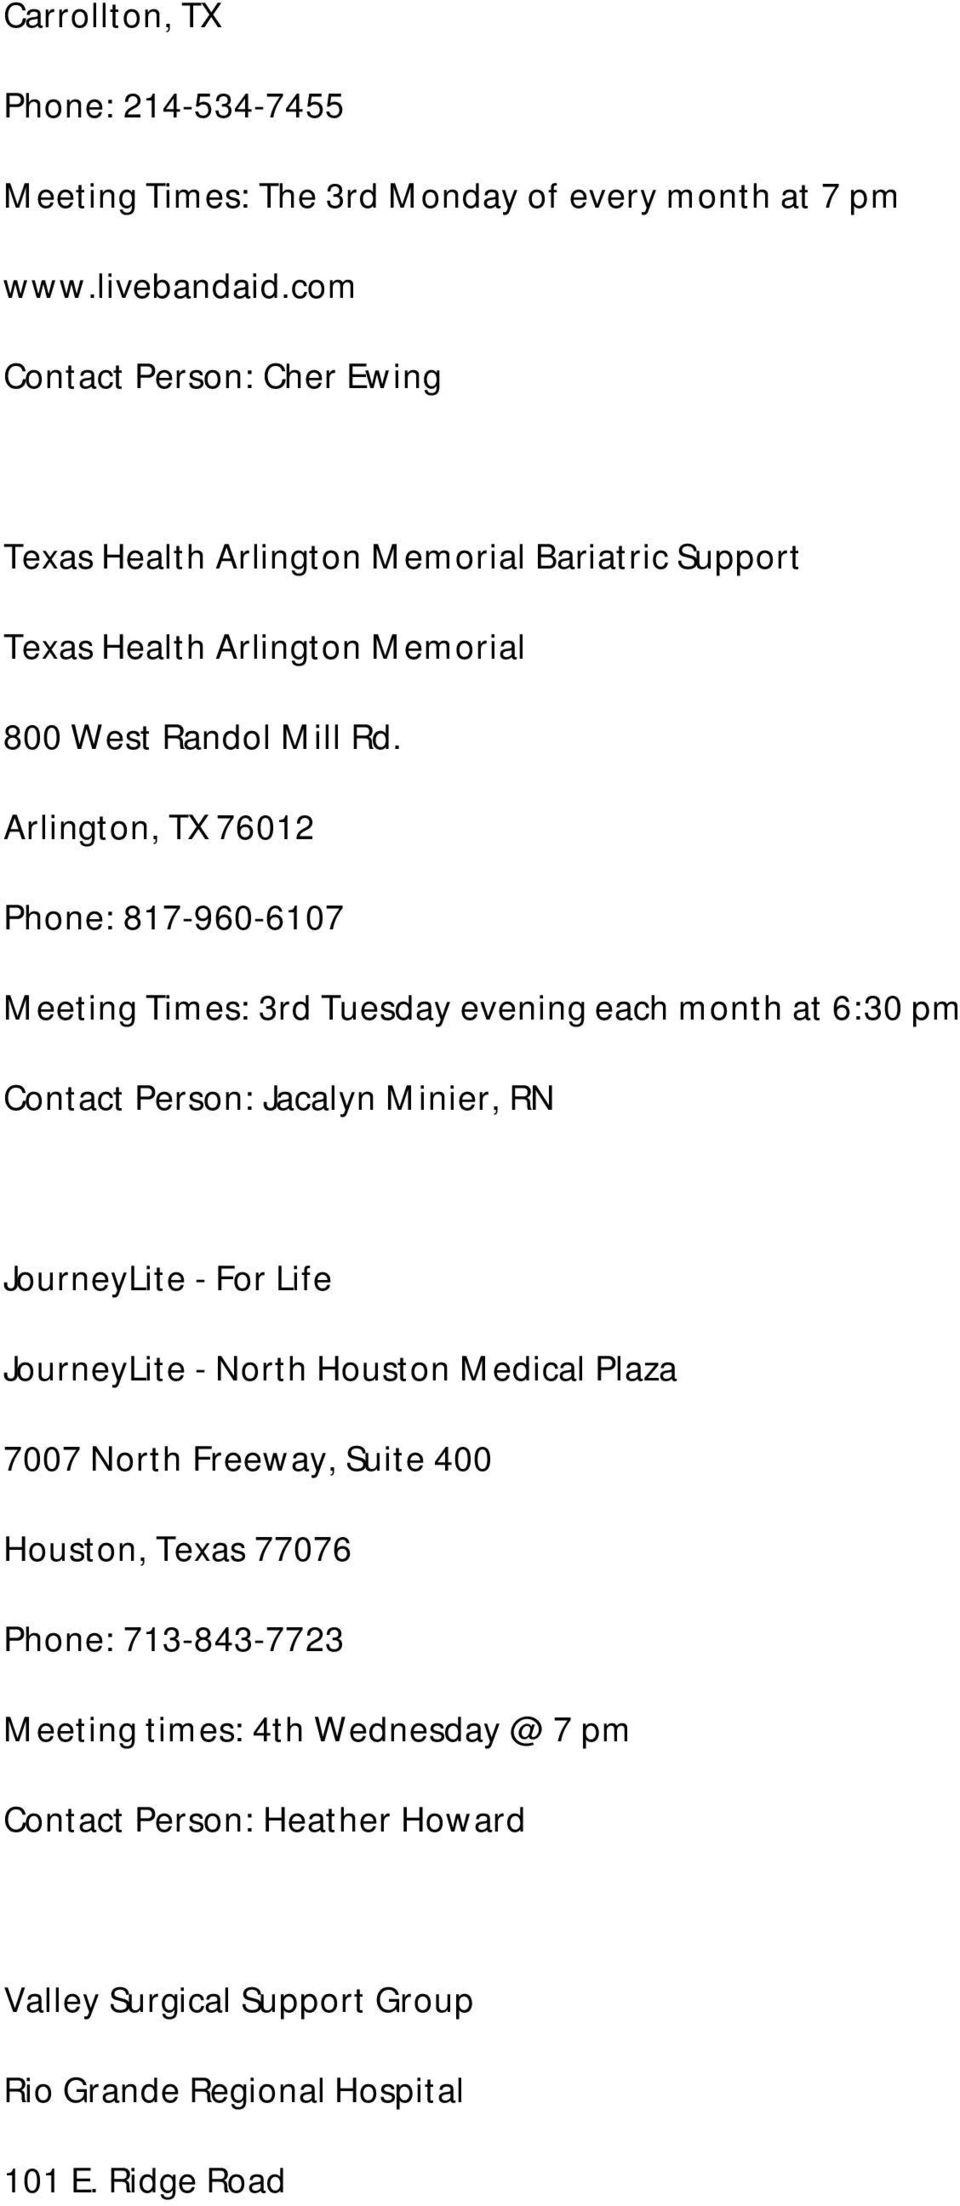 Arlington, TX 76012 Phone: 817-960-6107 Meeting Times: 3rd Tuesday evening each month at 6:30 pm Contact Person: Jacalyn Minier, RN JourneyLite - For Life